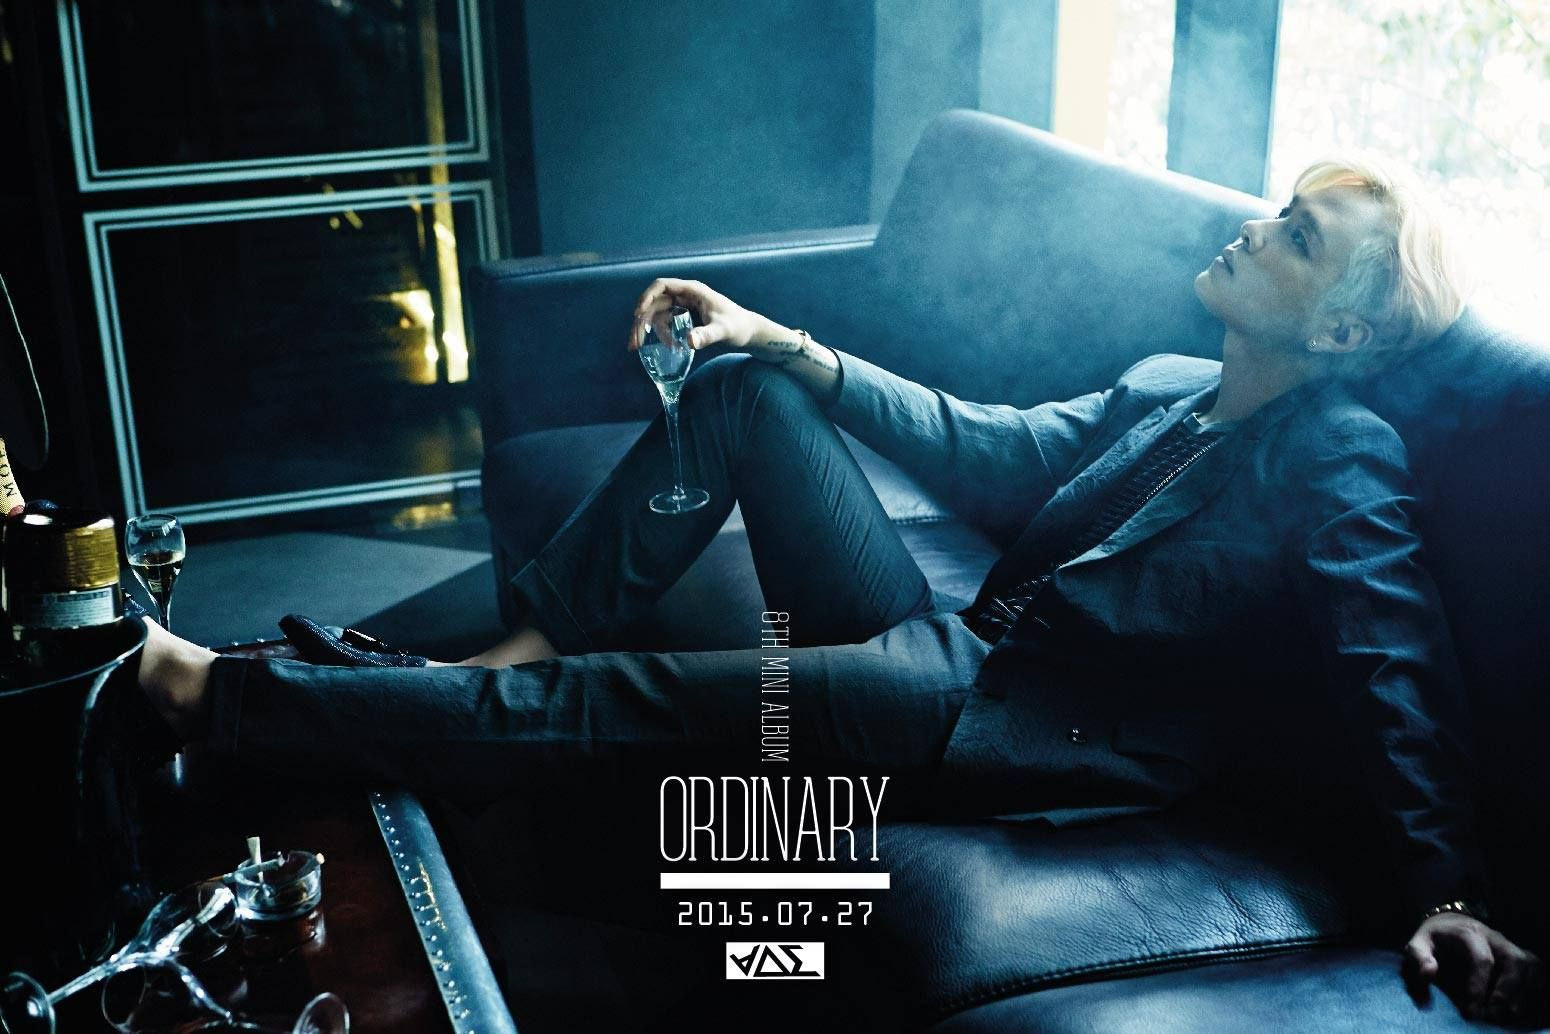 ‪#‎BEAST‬ 8TH MINI ALBUM ‪#‎ORDINARY‬ ‪#‎비스트‬ ‪#‎컴백‬ ‪#‎COME_BACK  #‎용준형‬